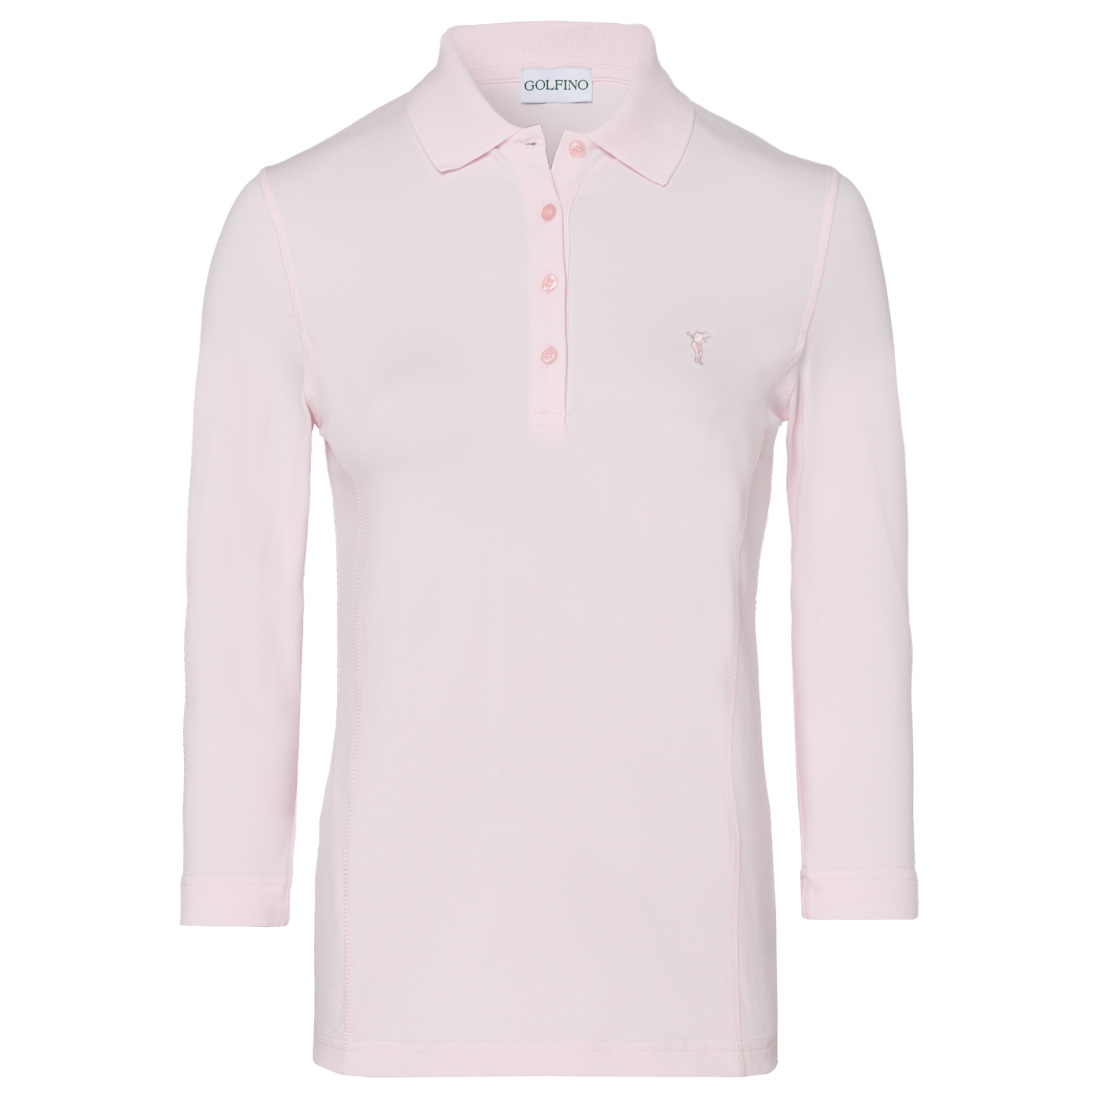 Damen Polo mit 3/4-Arm